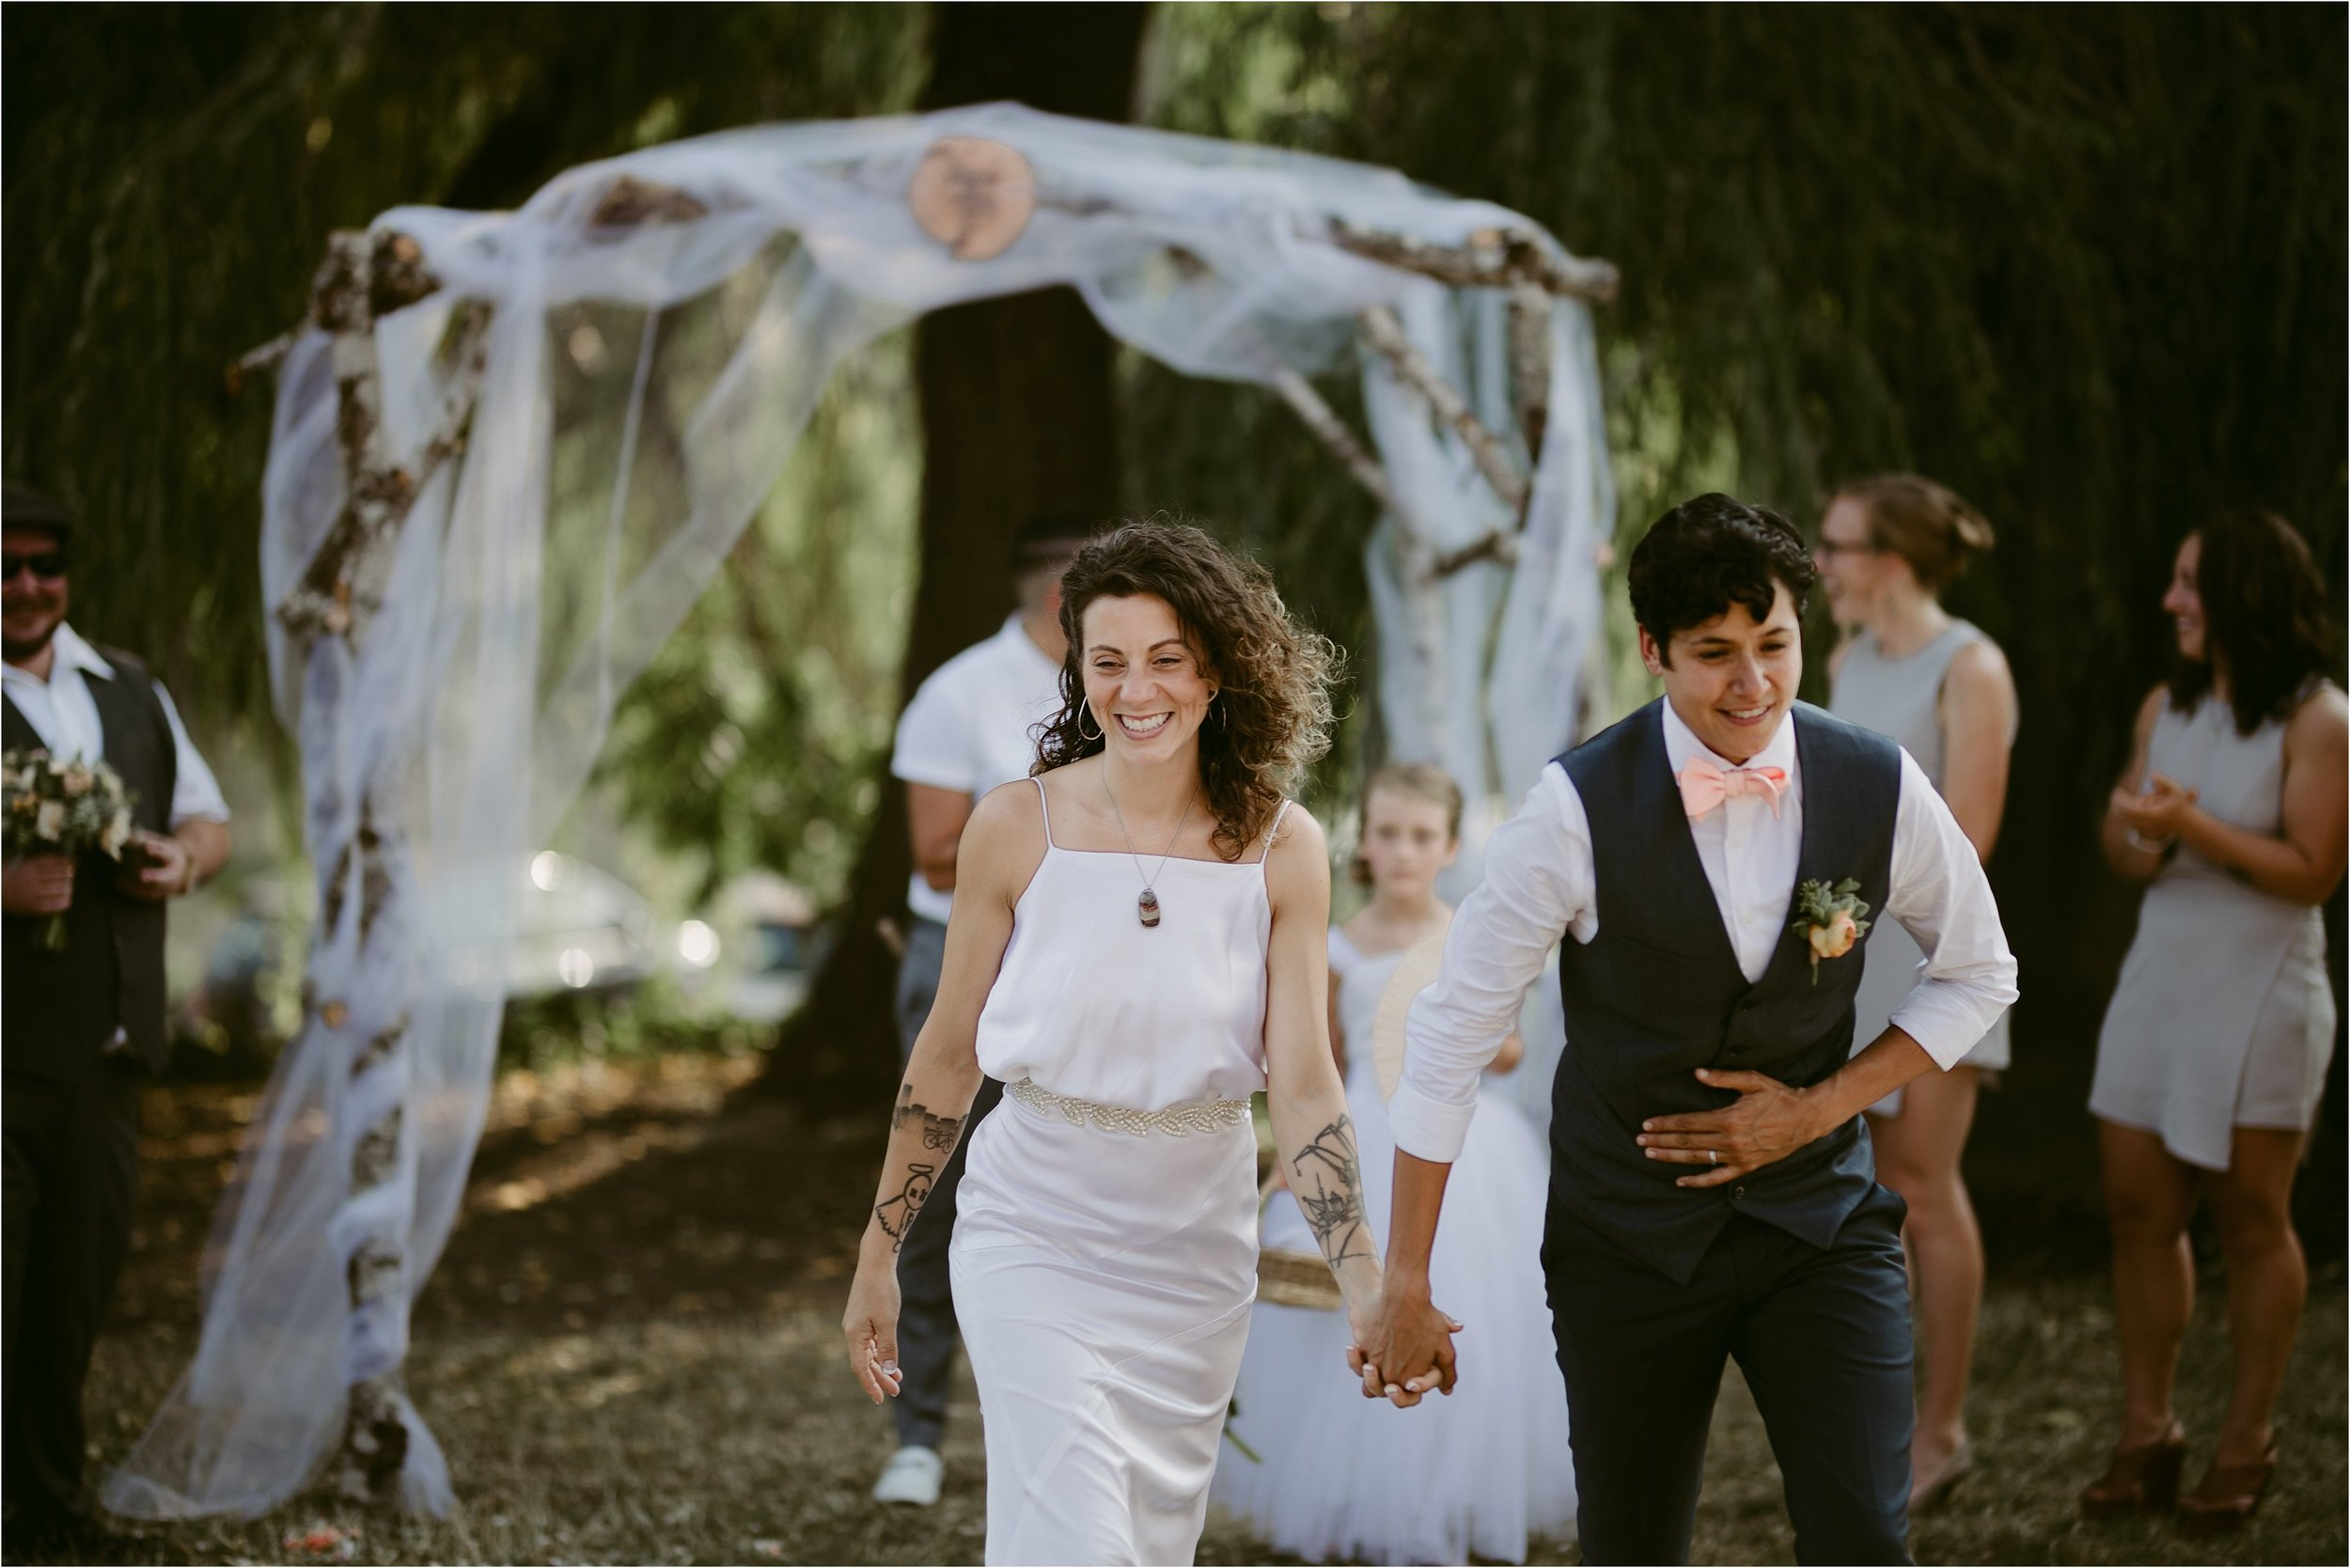 same-sex-wedding-catherdral-park-portland-indie-photographer_0214.jpg